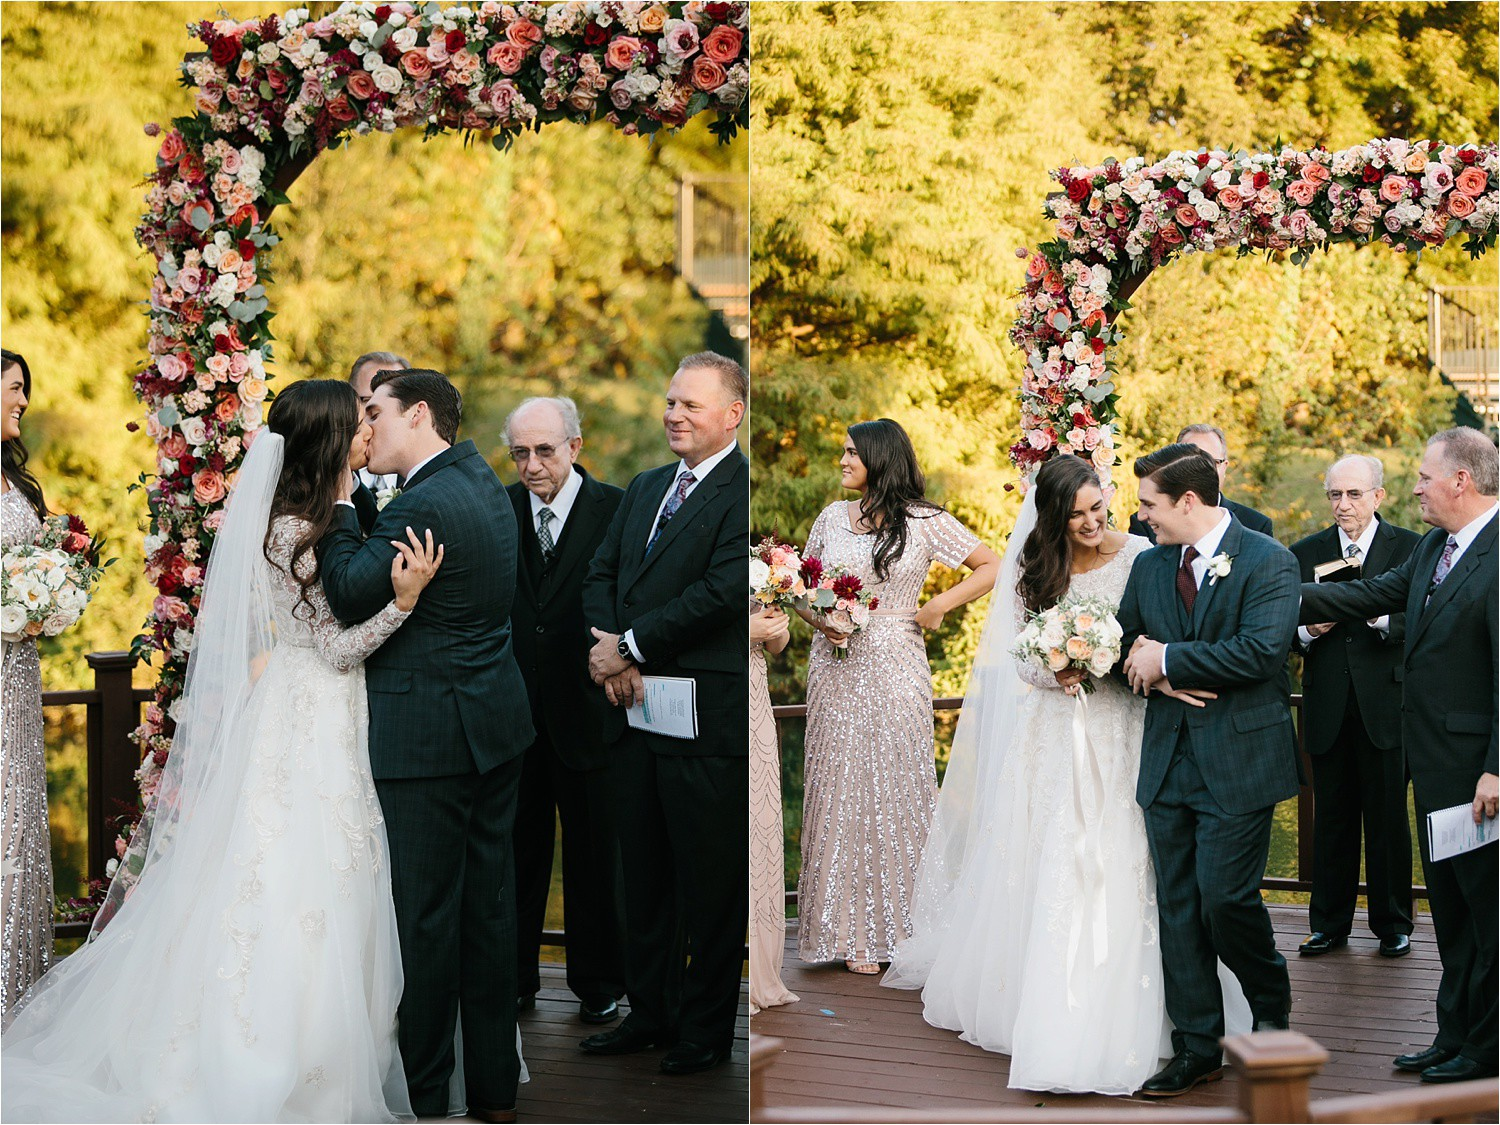 an-elegant-family-ranch-wedding-on-lake-worth-with-burgundy-apricot-and-blush-inspired-decorations-by-north-texas-wedding-photographer-rachel-meagan-photography-_-33